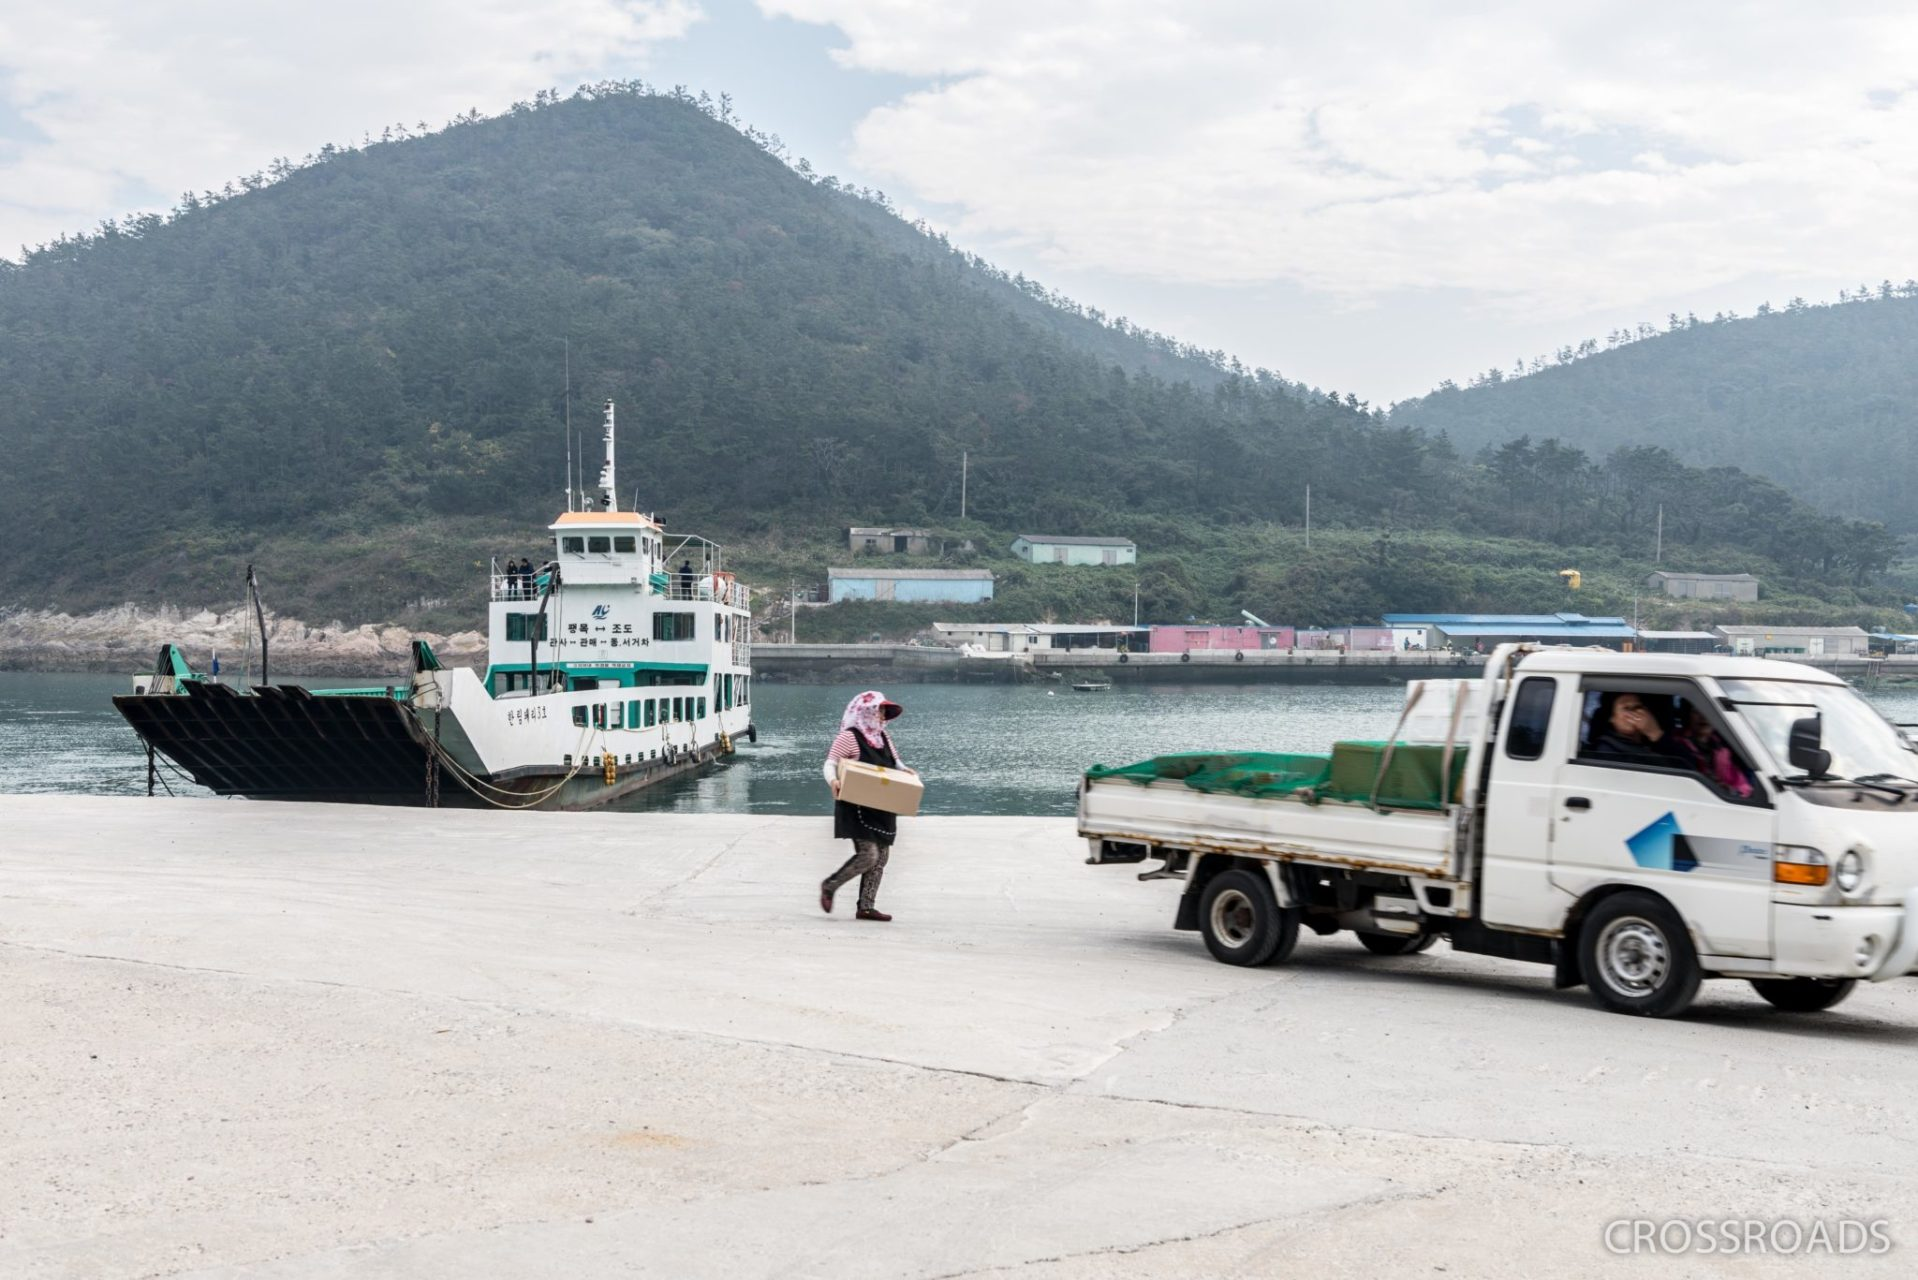 The island's only connection to the mainland is a ferry that arrives – weather permitting – once a day, bringing essential items and picking up fish and seaweed that the islanders sell to earn their living.